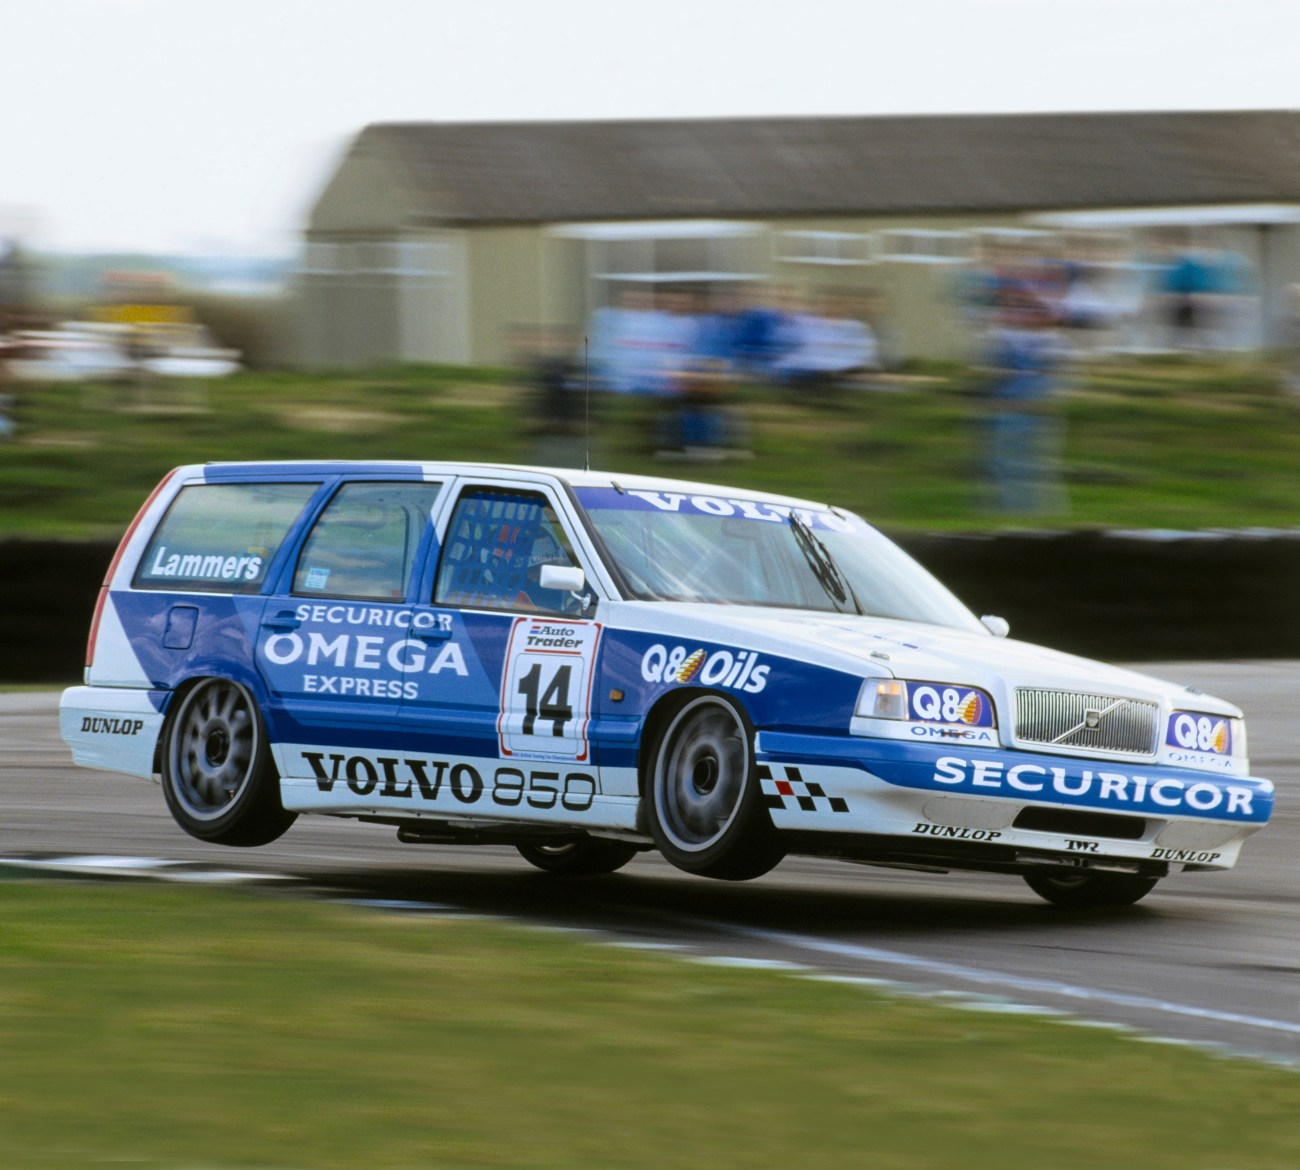 19366_volvo_entered_btcc_with_its_850_estate_equipped_with_catalytic_converters